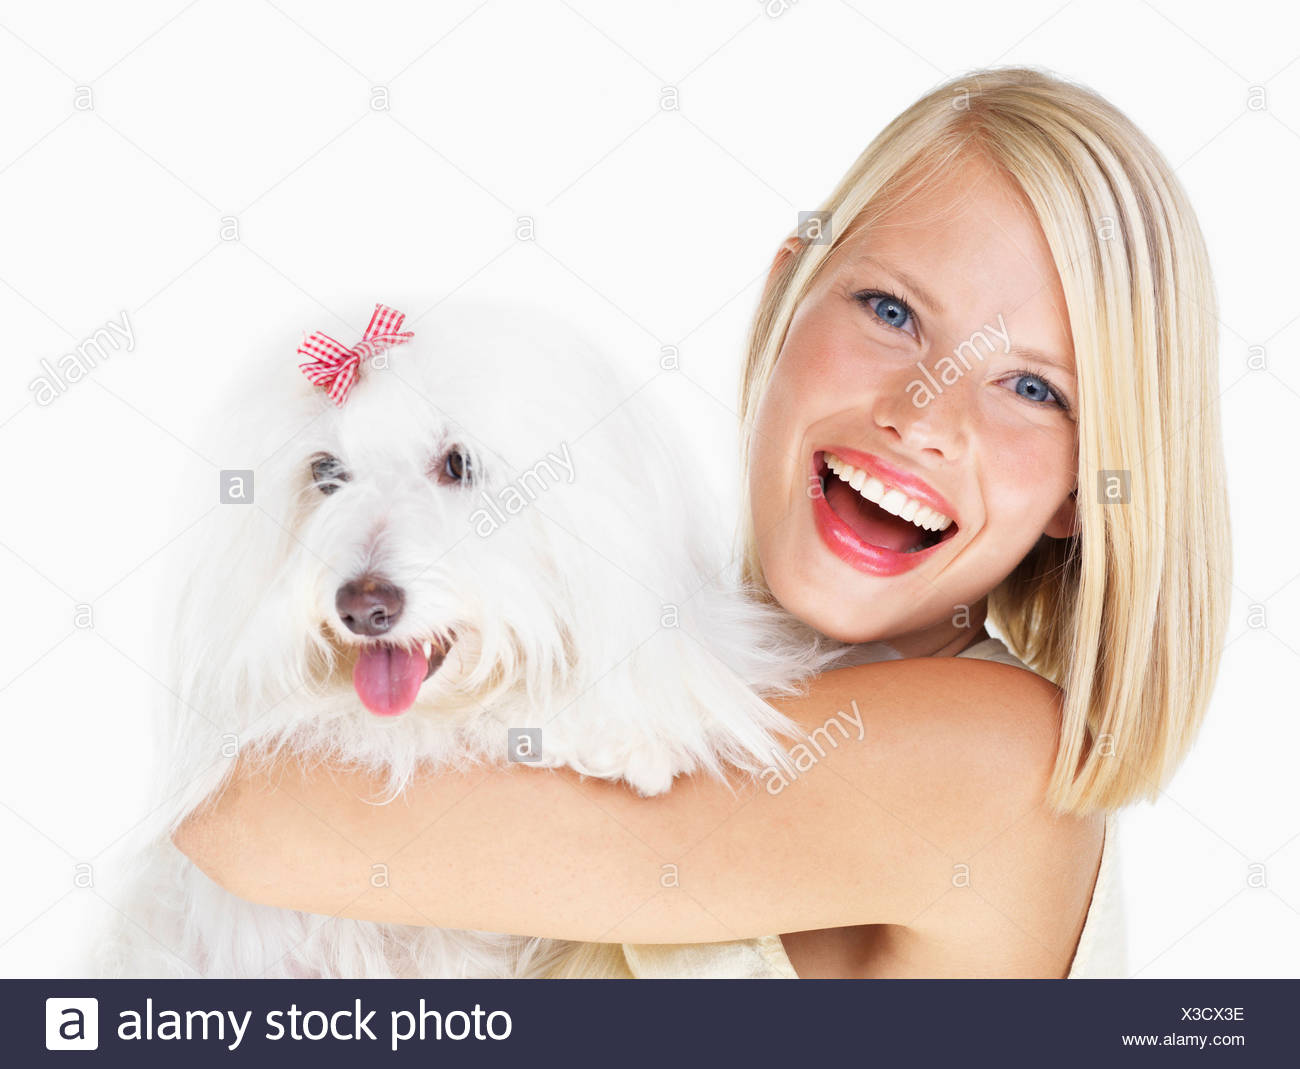 Studio Shot, Portrait of young woman holding dog - Stock Image